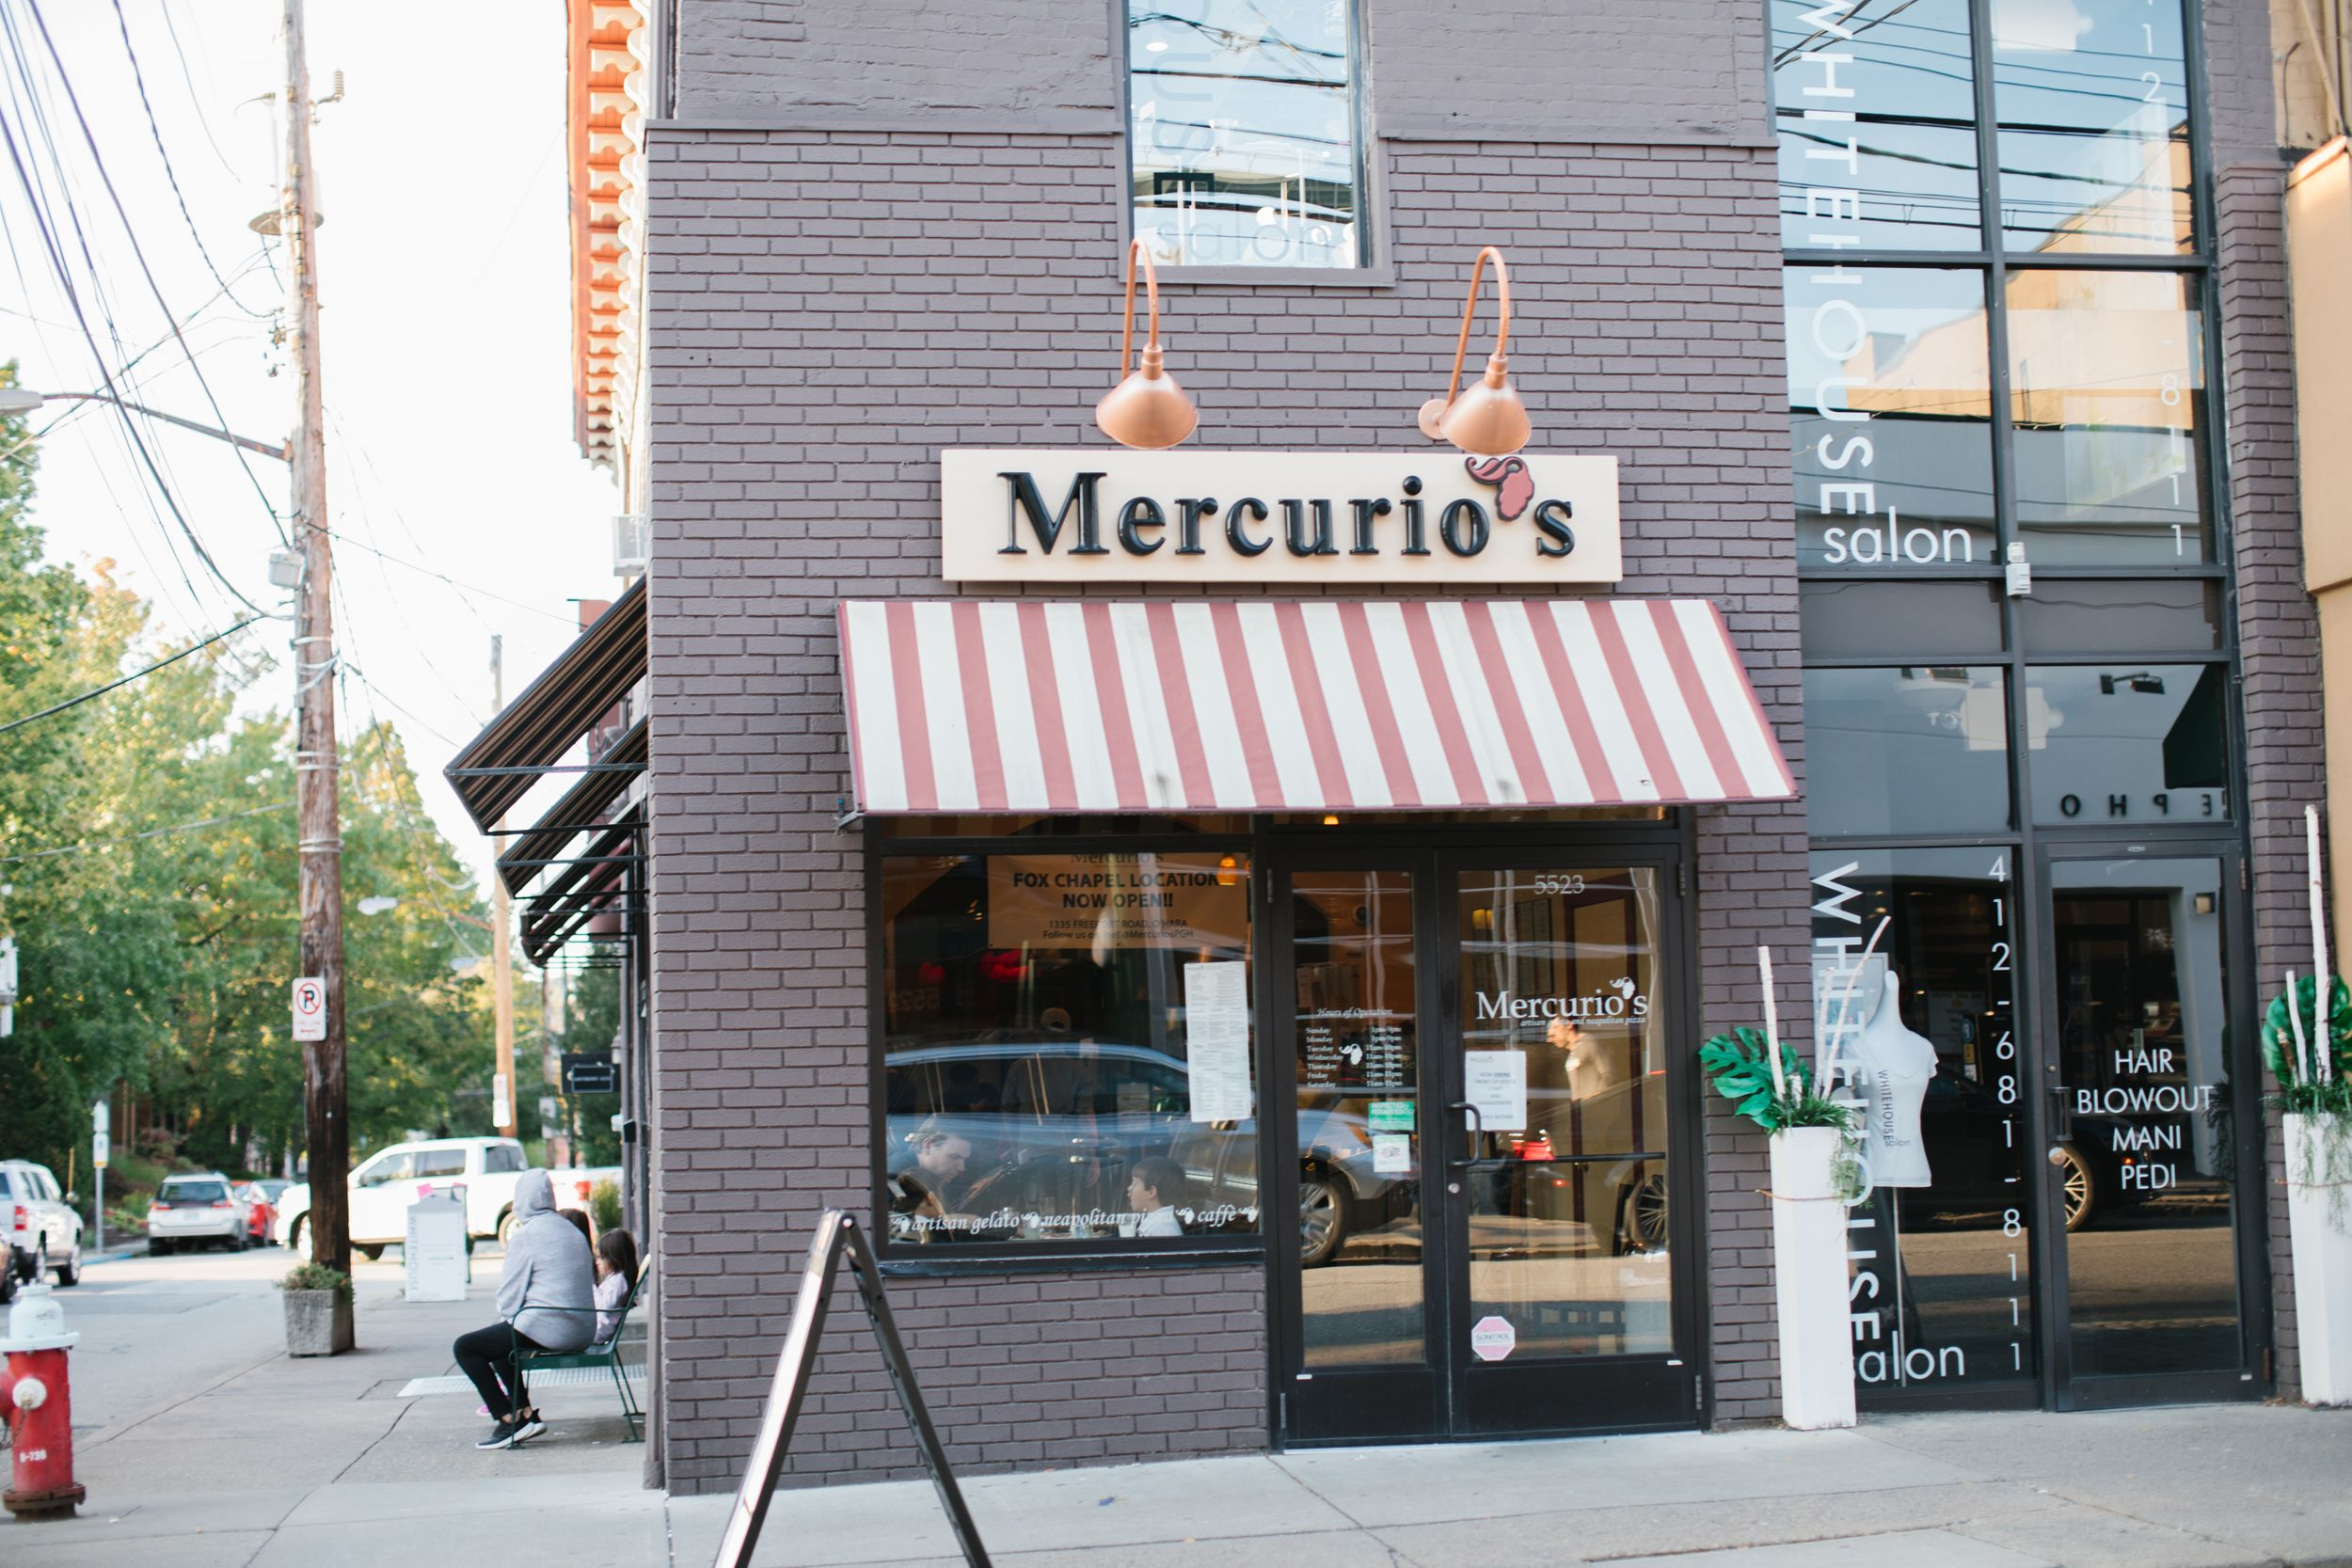 mercurios pizza restaurant in pittsburgh exterior